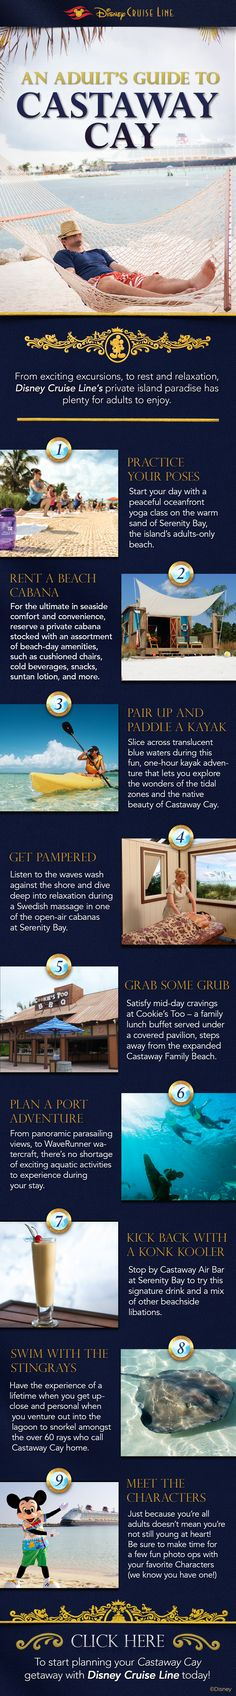 "Learn how to enjoy a little adult ""me-time"" while on Castaway Cay with this infographic!"